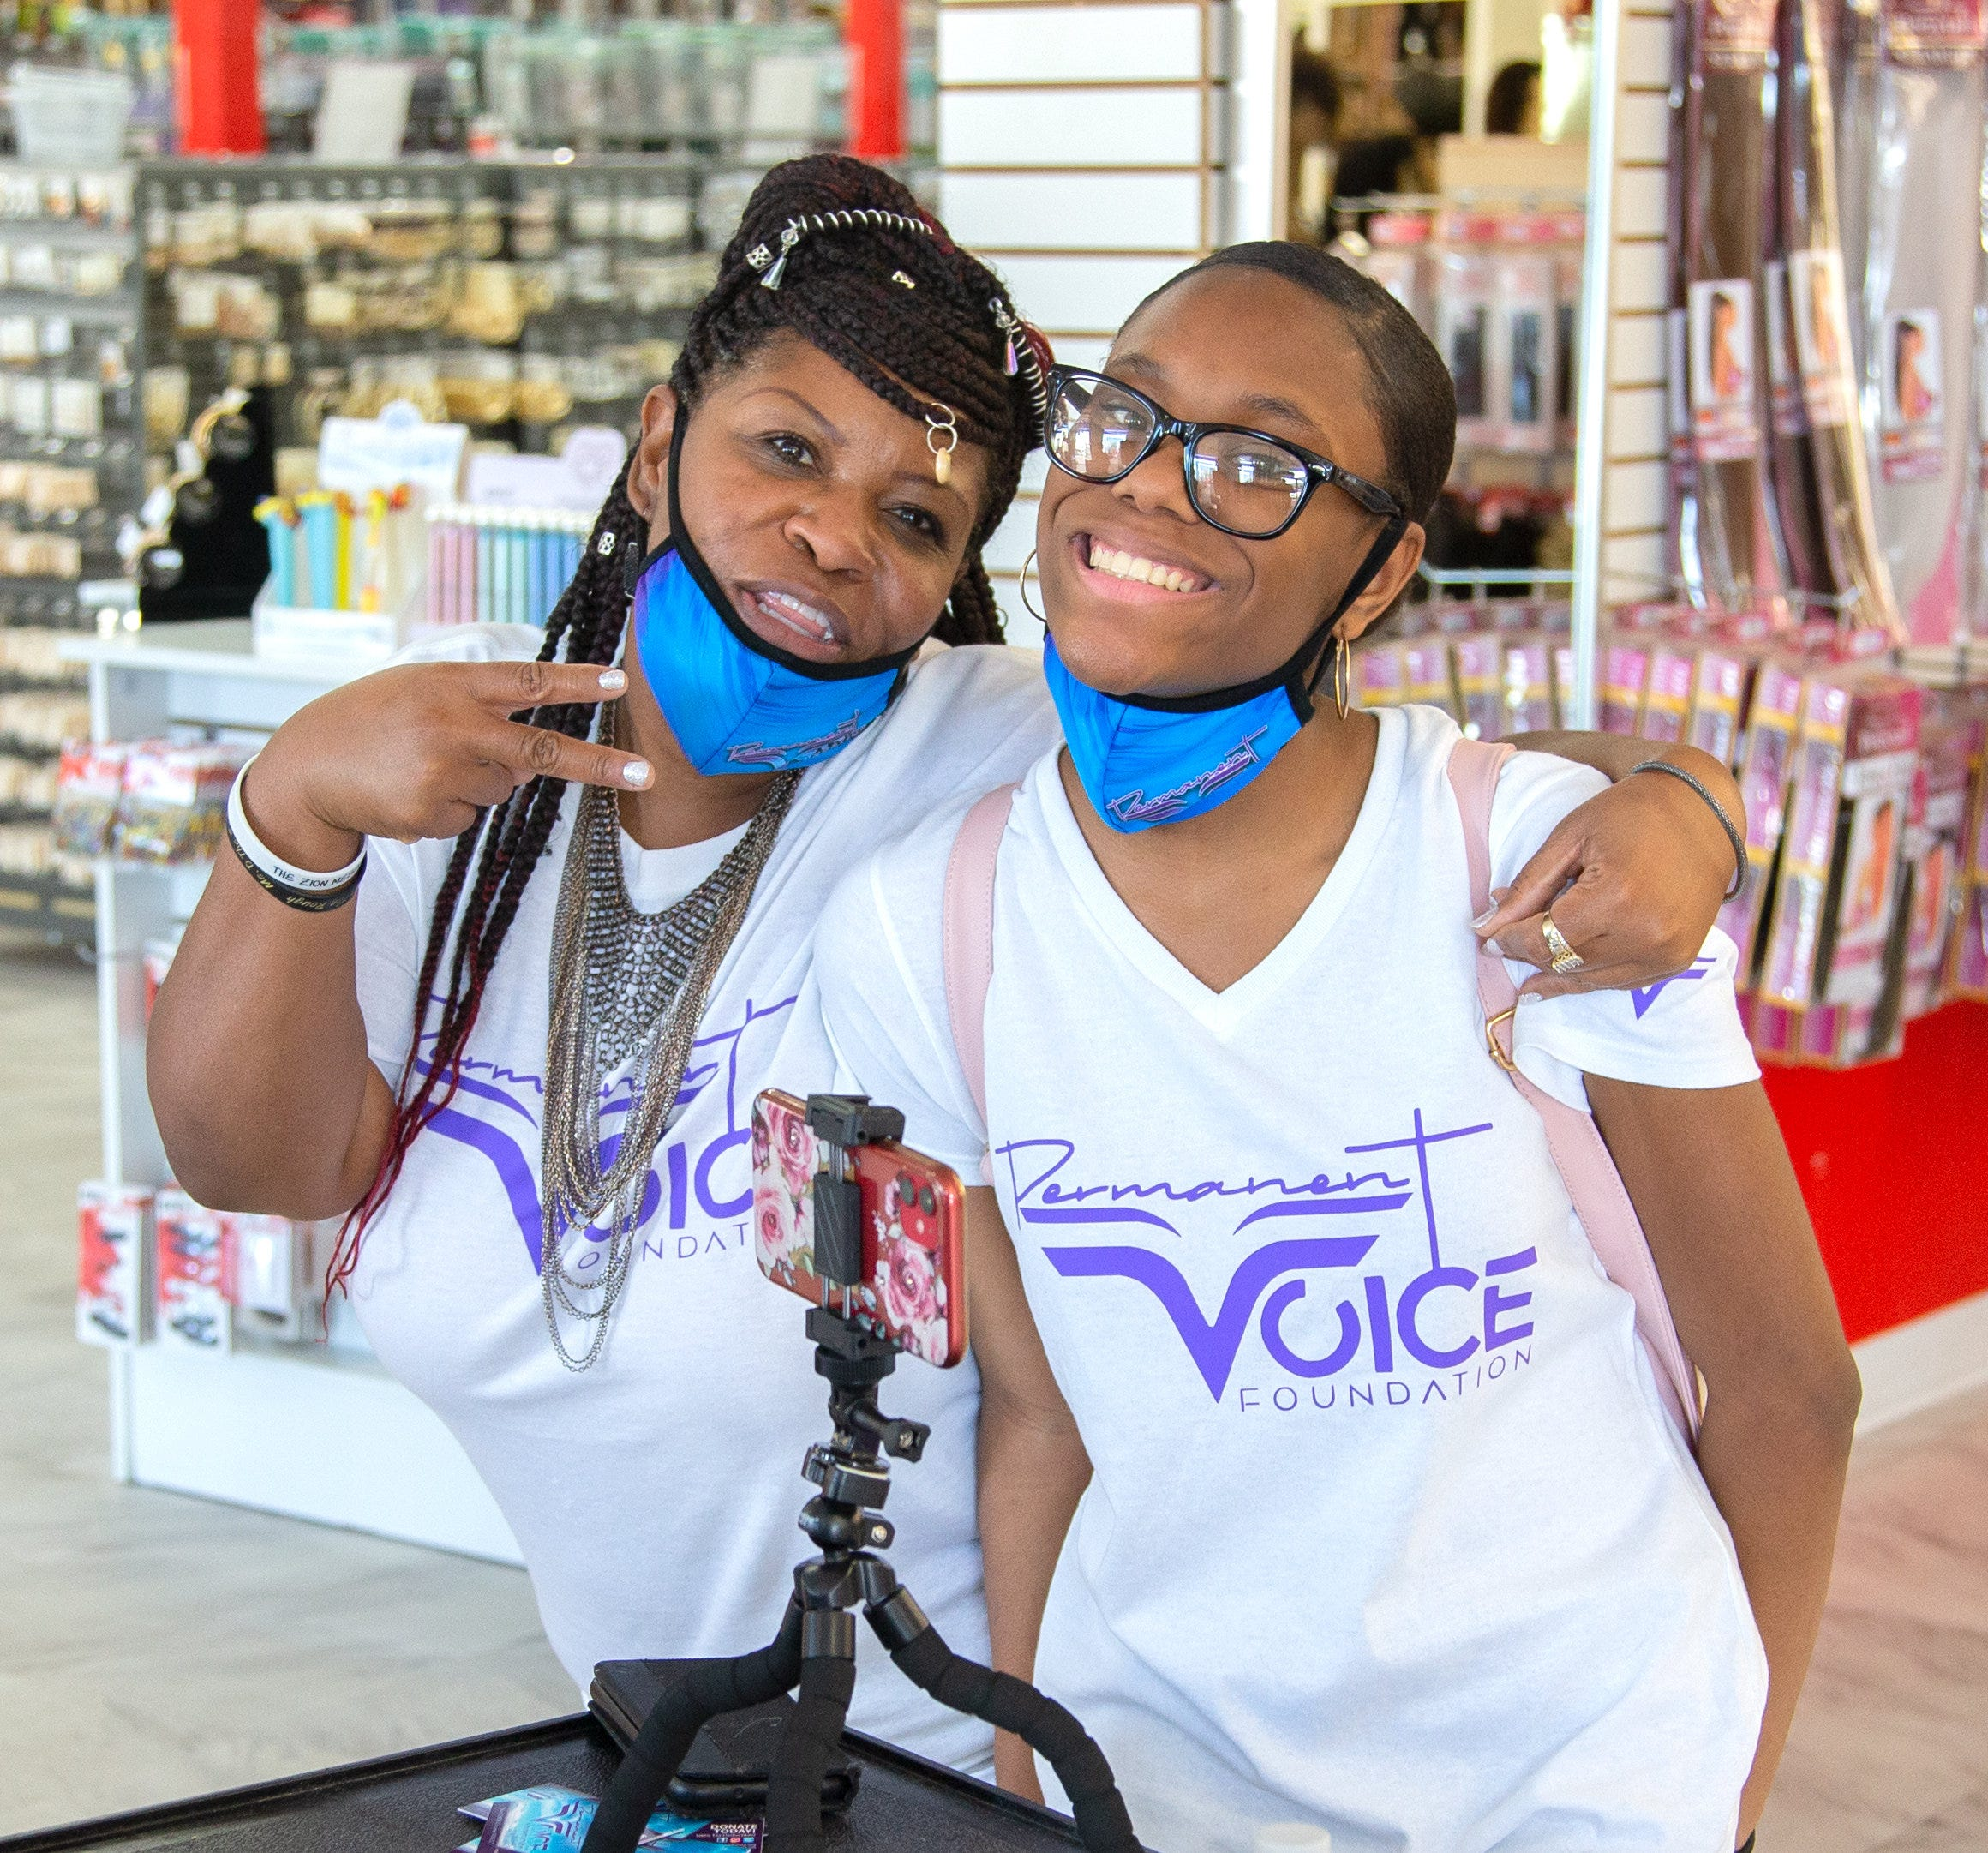 Dana Burns, founder and CEO of the Permanent Voice Foundation, poses for a picture with her daughter Tierra Neal at WABA Hair & Beauty Supply in Phoenix on July 30. Burns says Tierra was her inspiration for starting the Permanent Voice Foundation